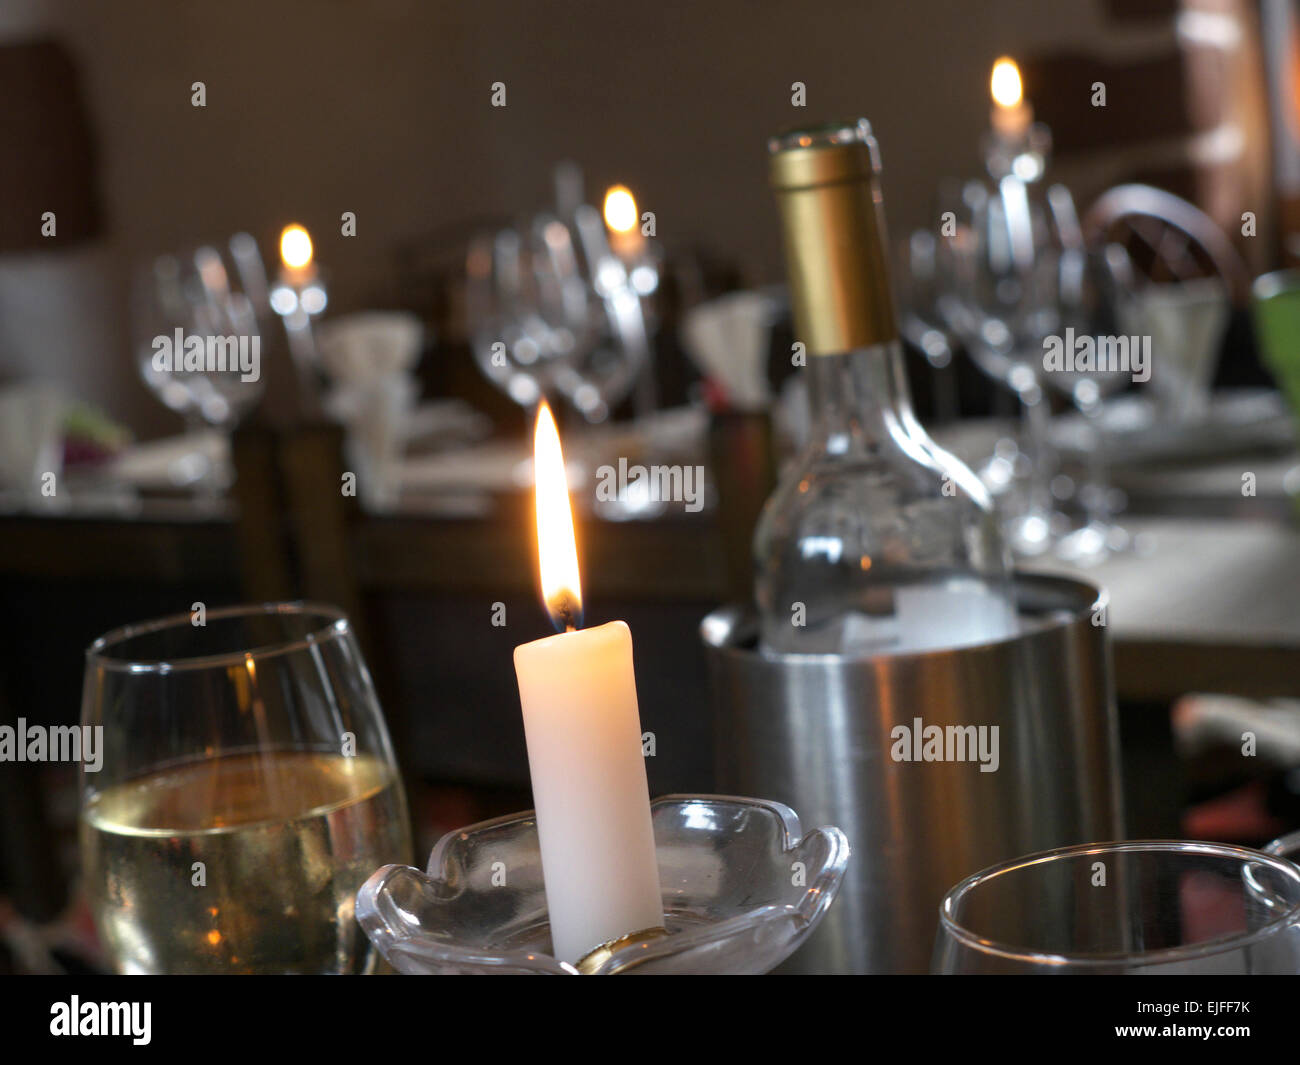 Romantic candlelit dining wine bar restaurant table tables interior - Stock Image